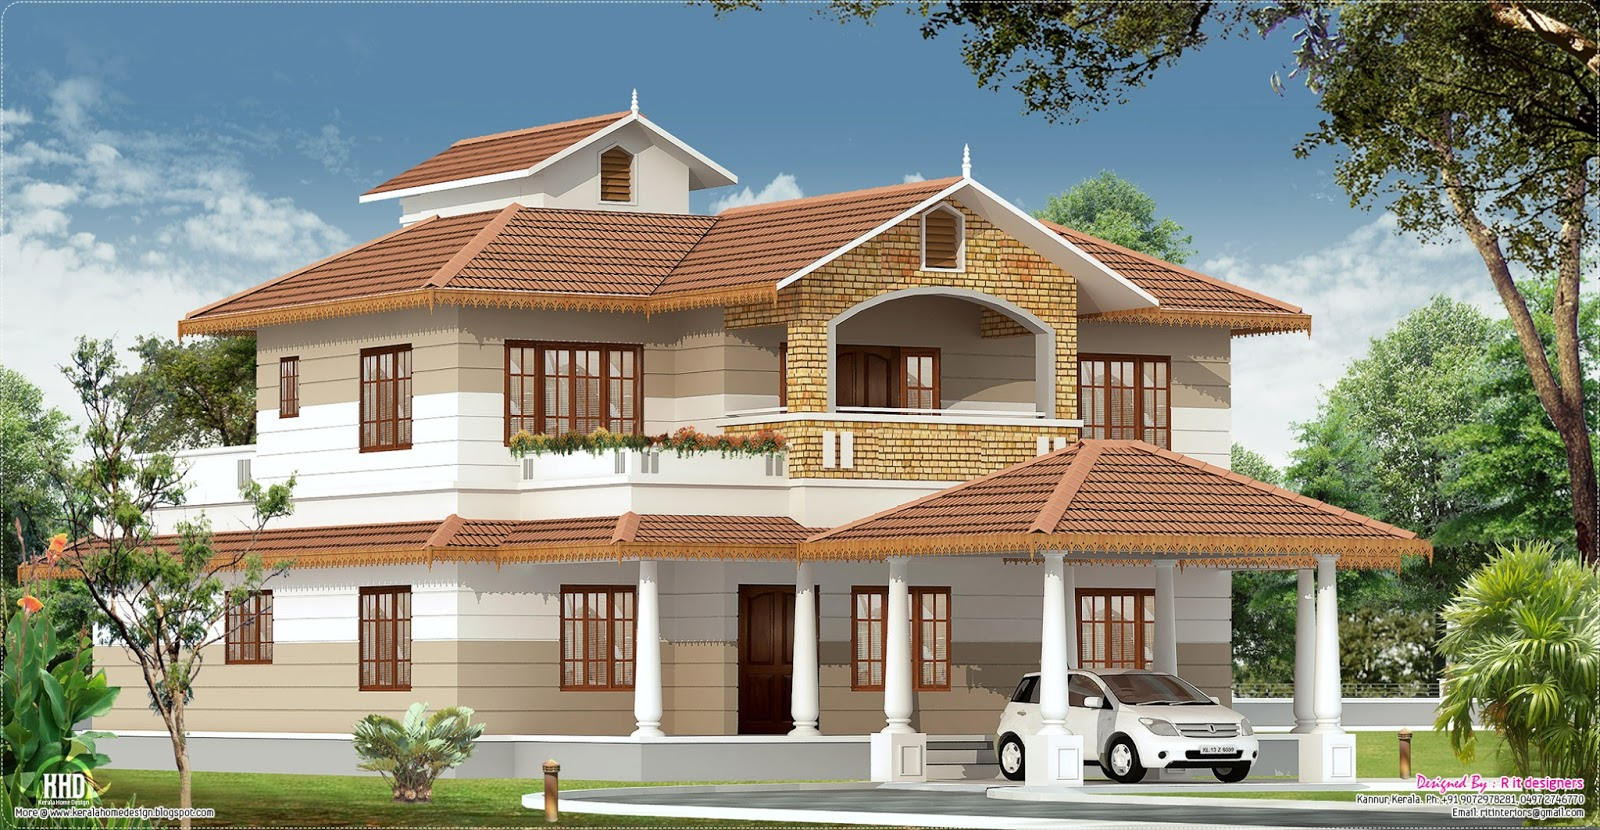 Kerala house design 2013 design decoration House designers house plans